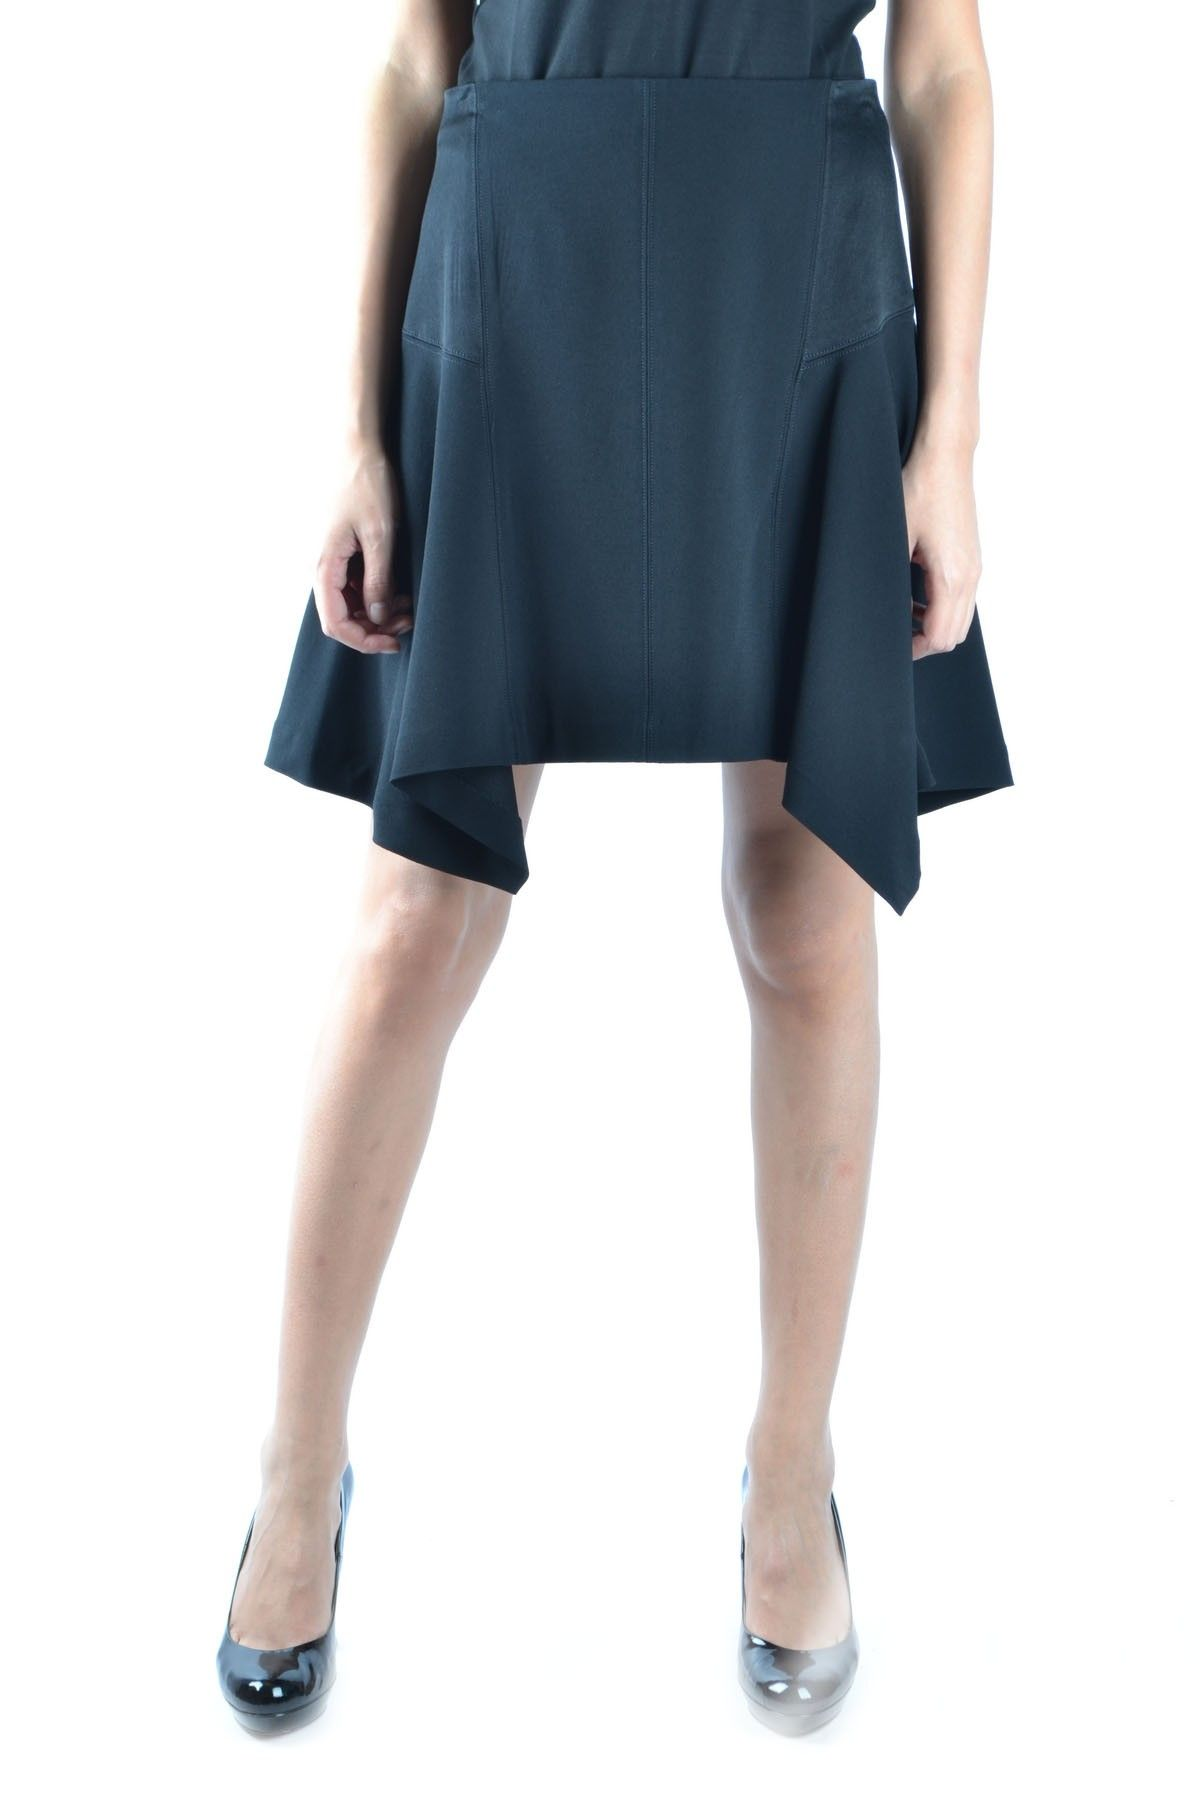 Marc By Marc Jacobs Black Polyamide Skirt